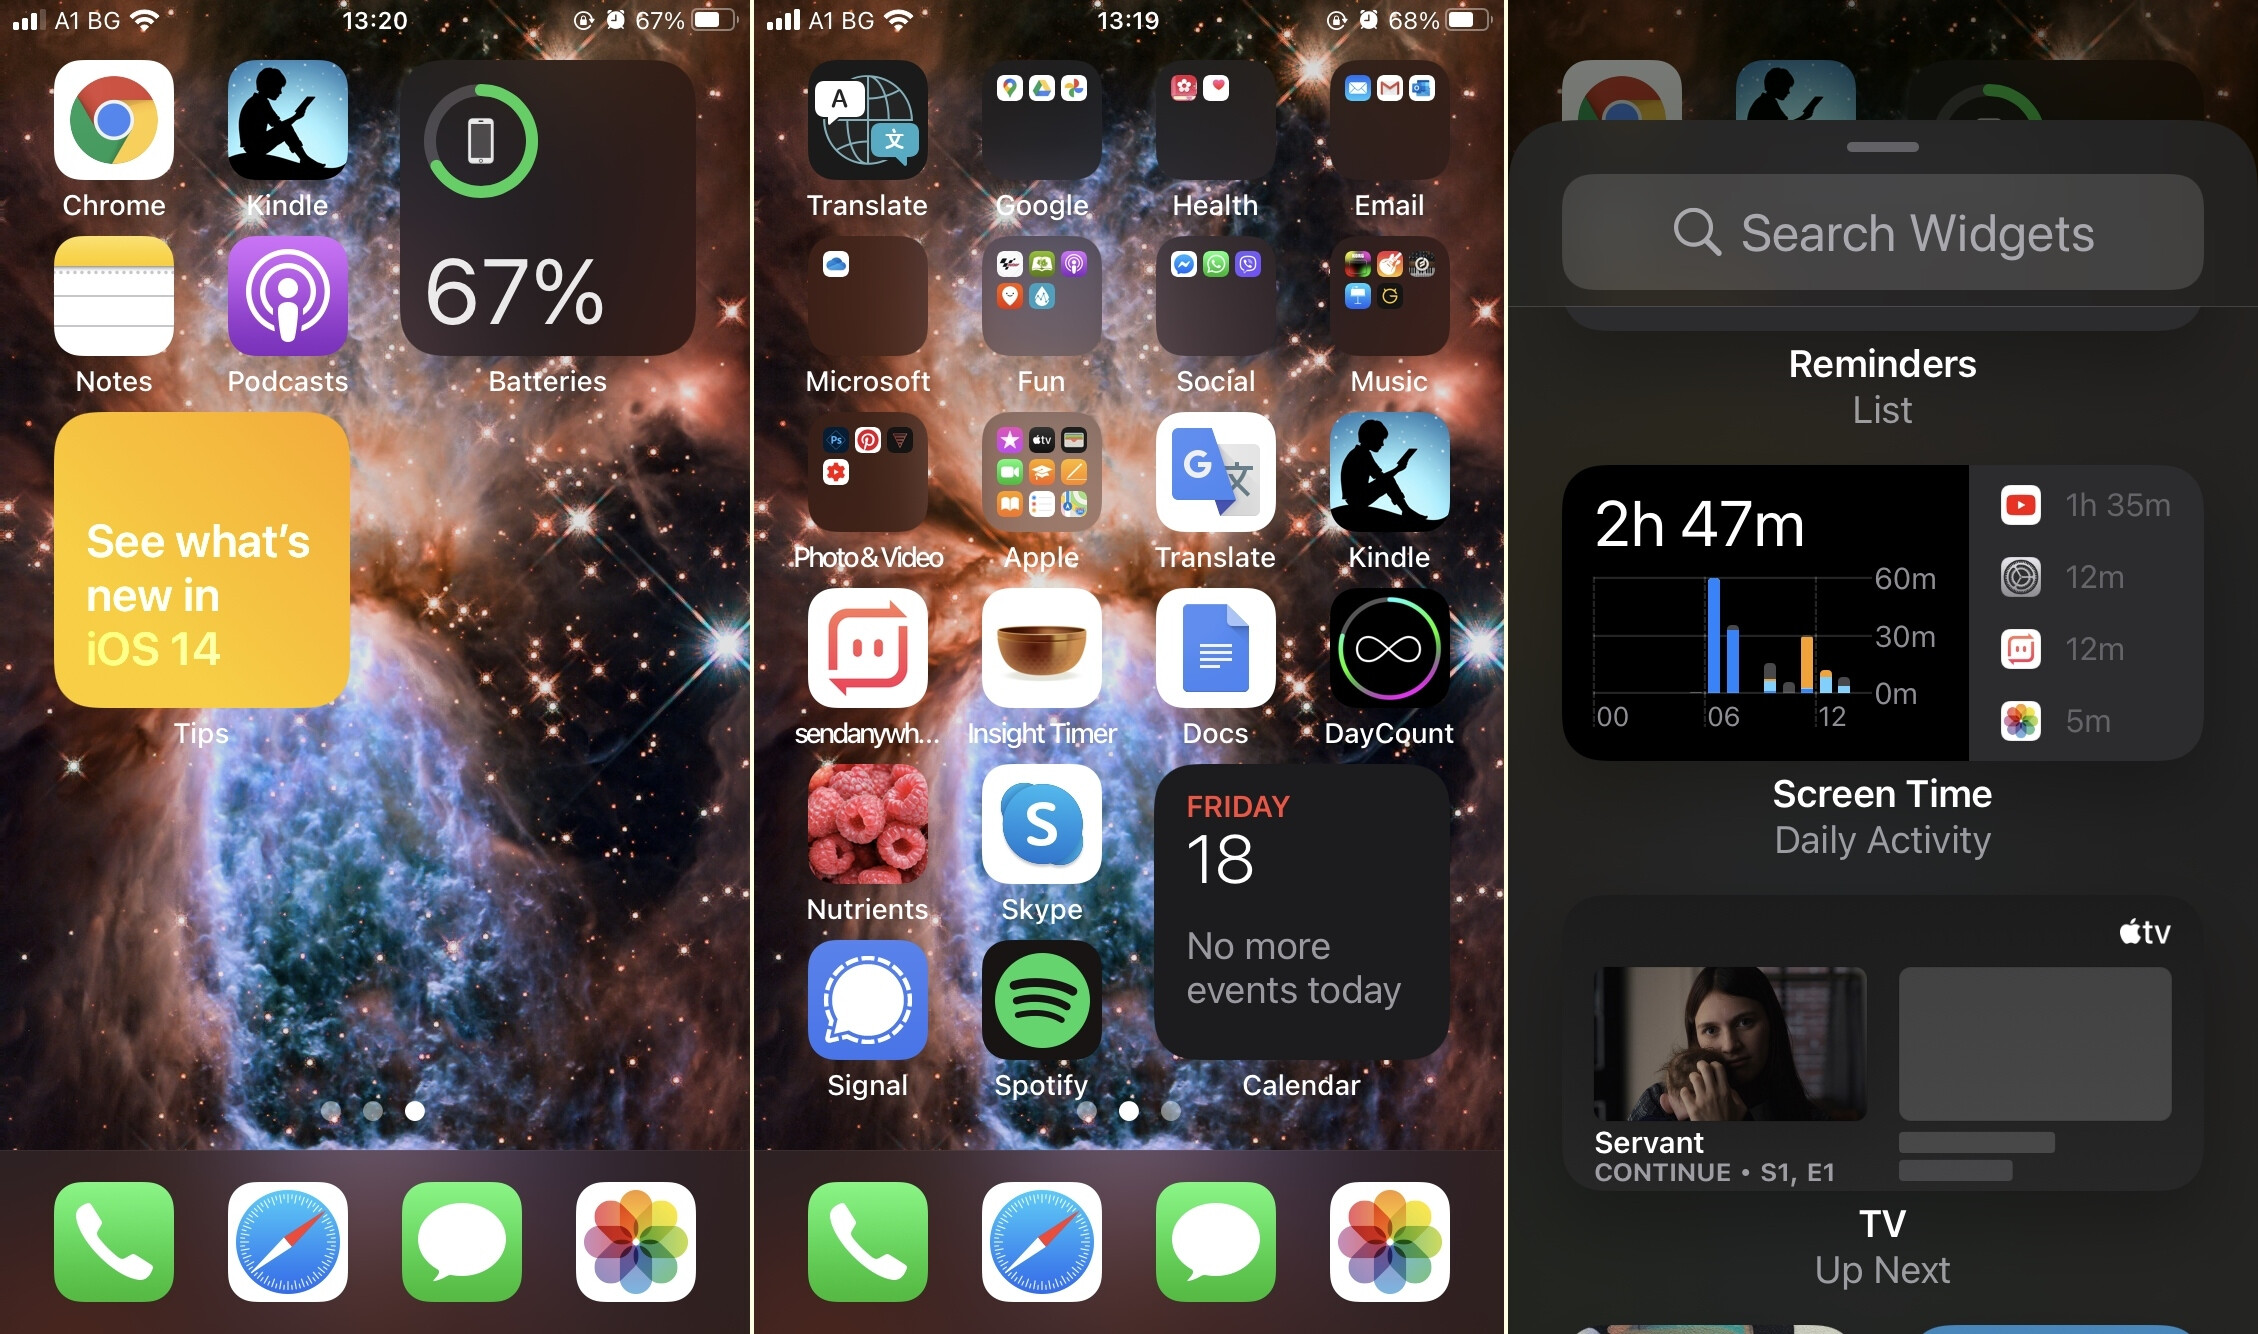 Home screen widgets are now available with iOS 14 update - How to use the new iOS 14 widgets